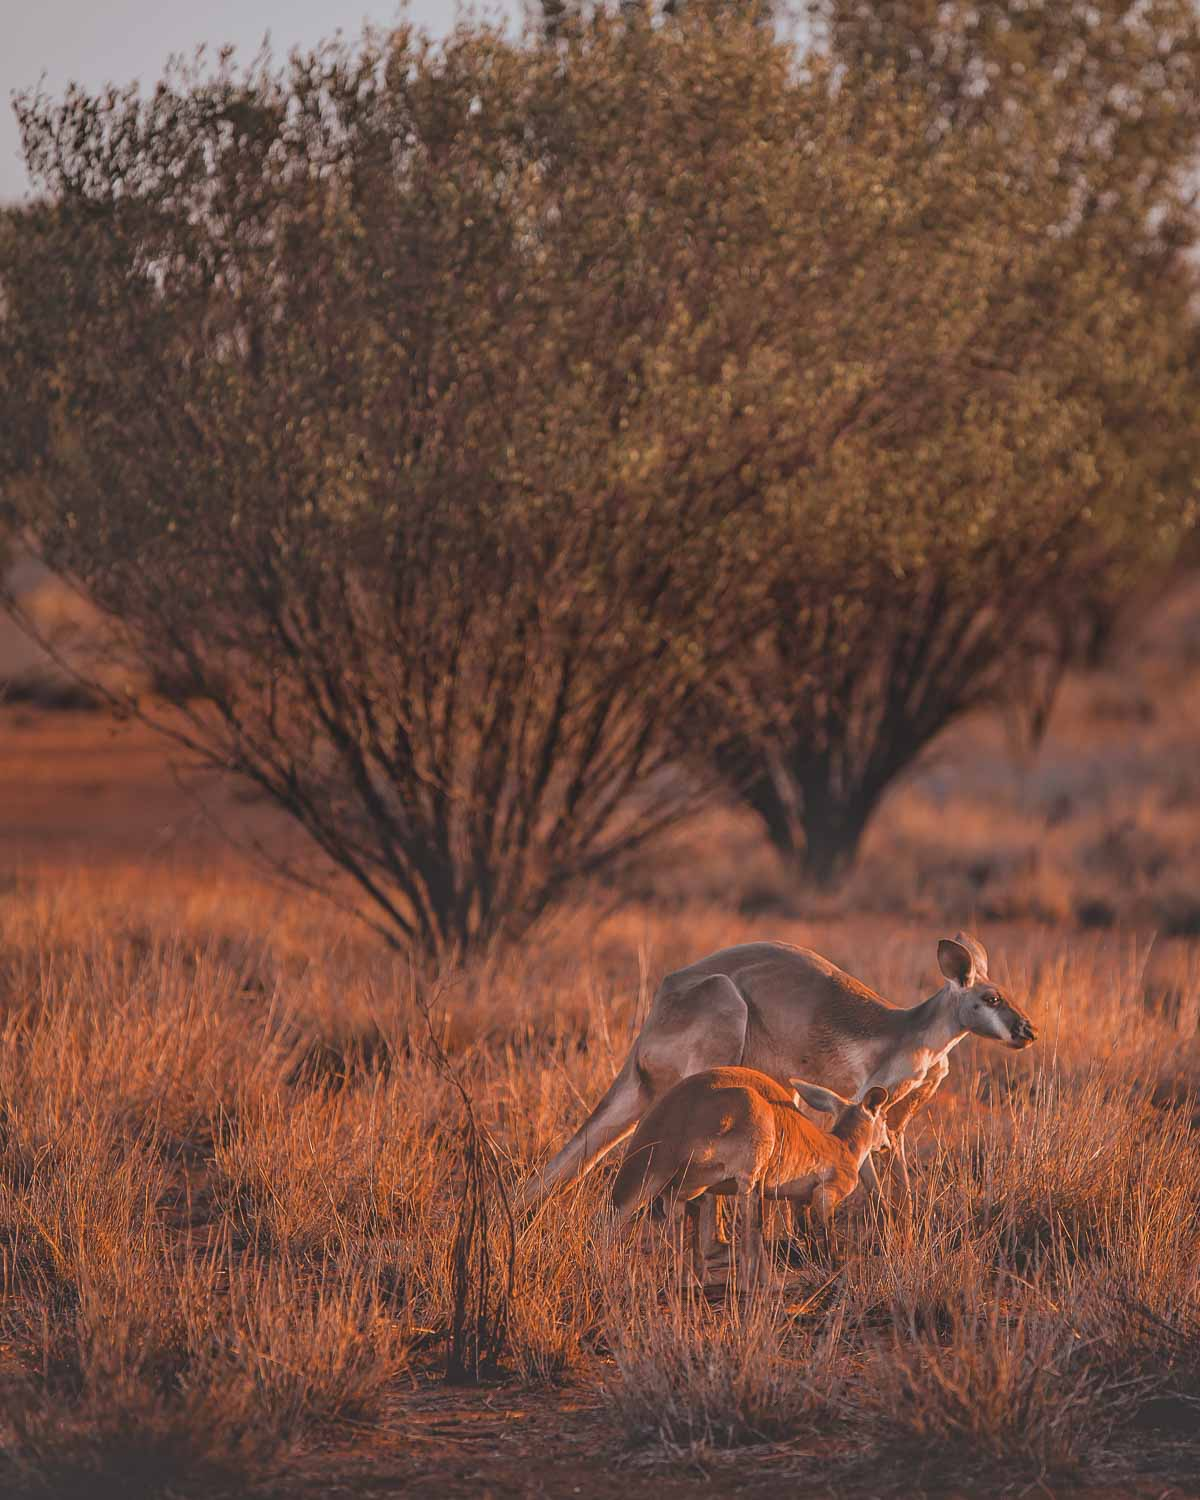 Australian outback Facts